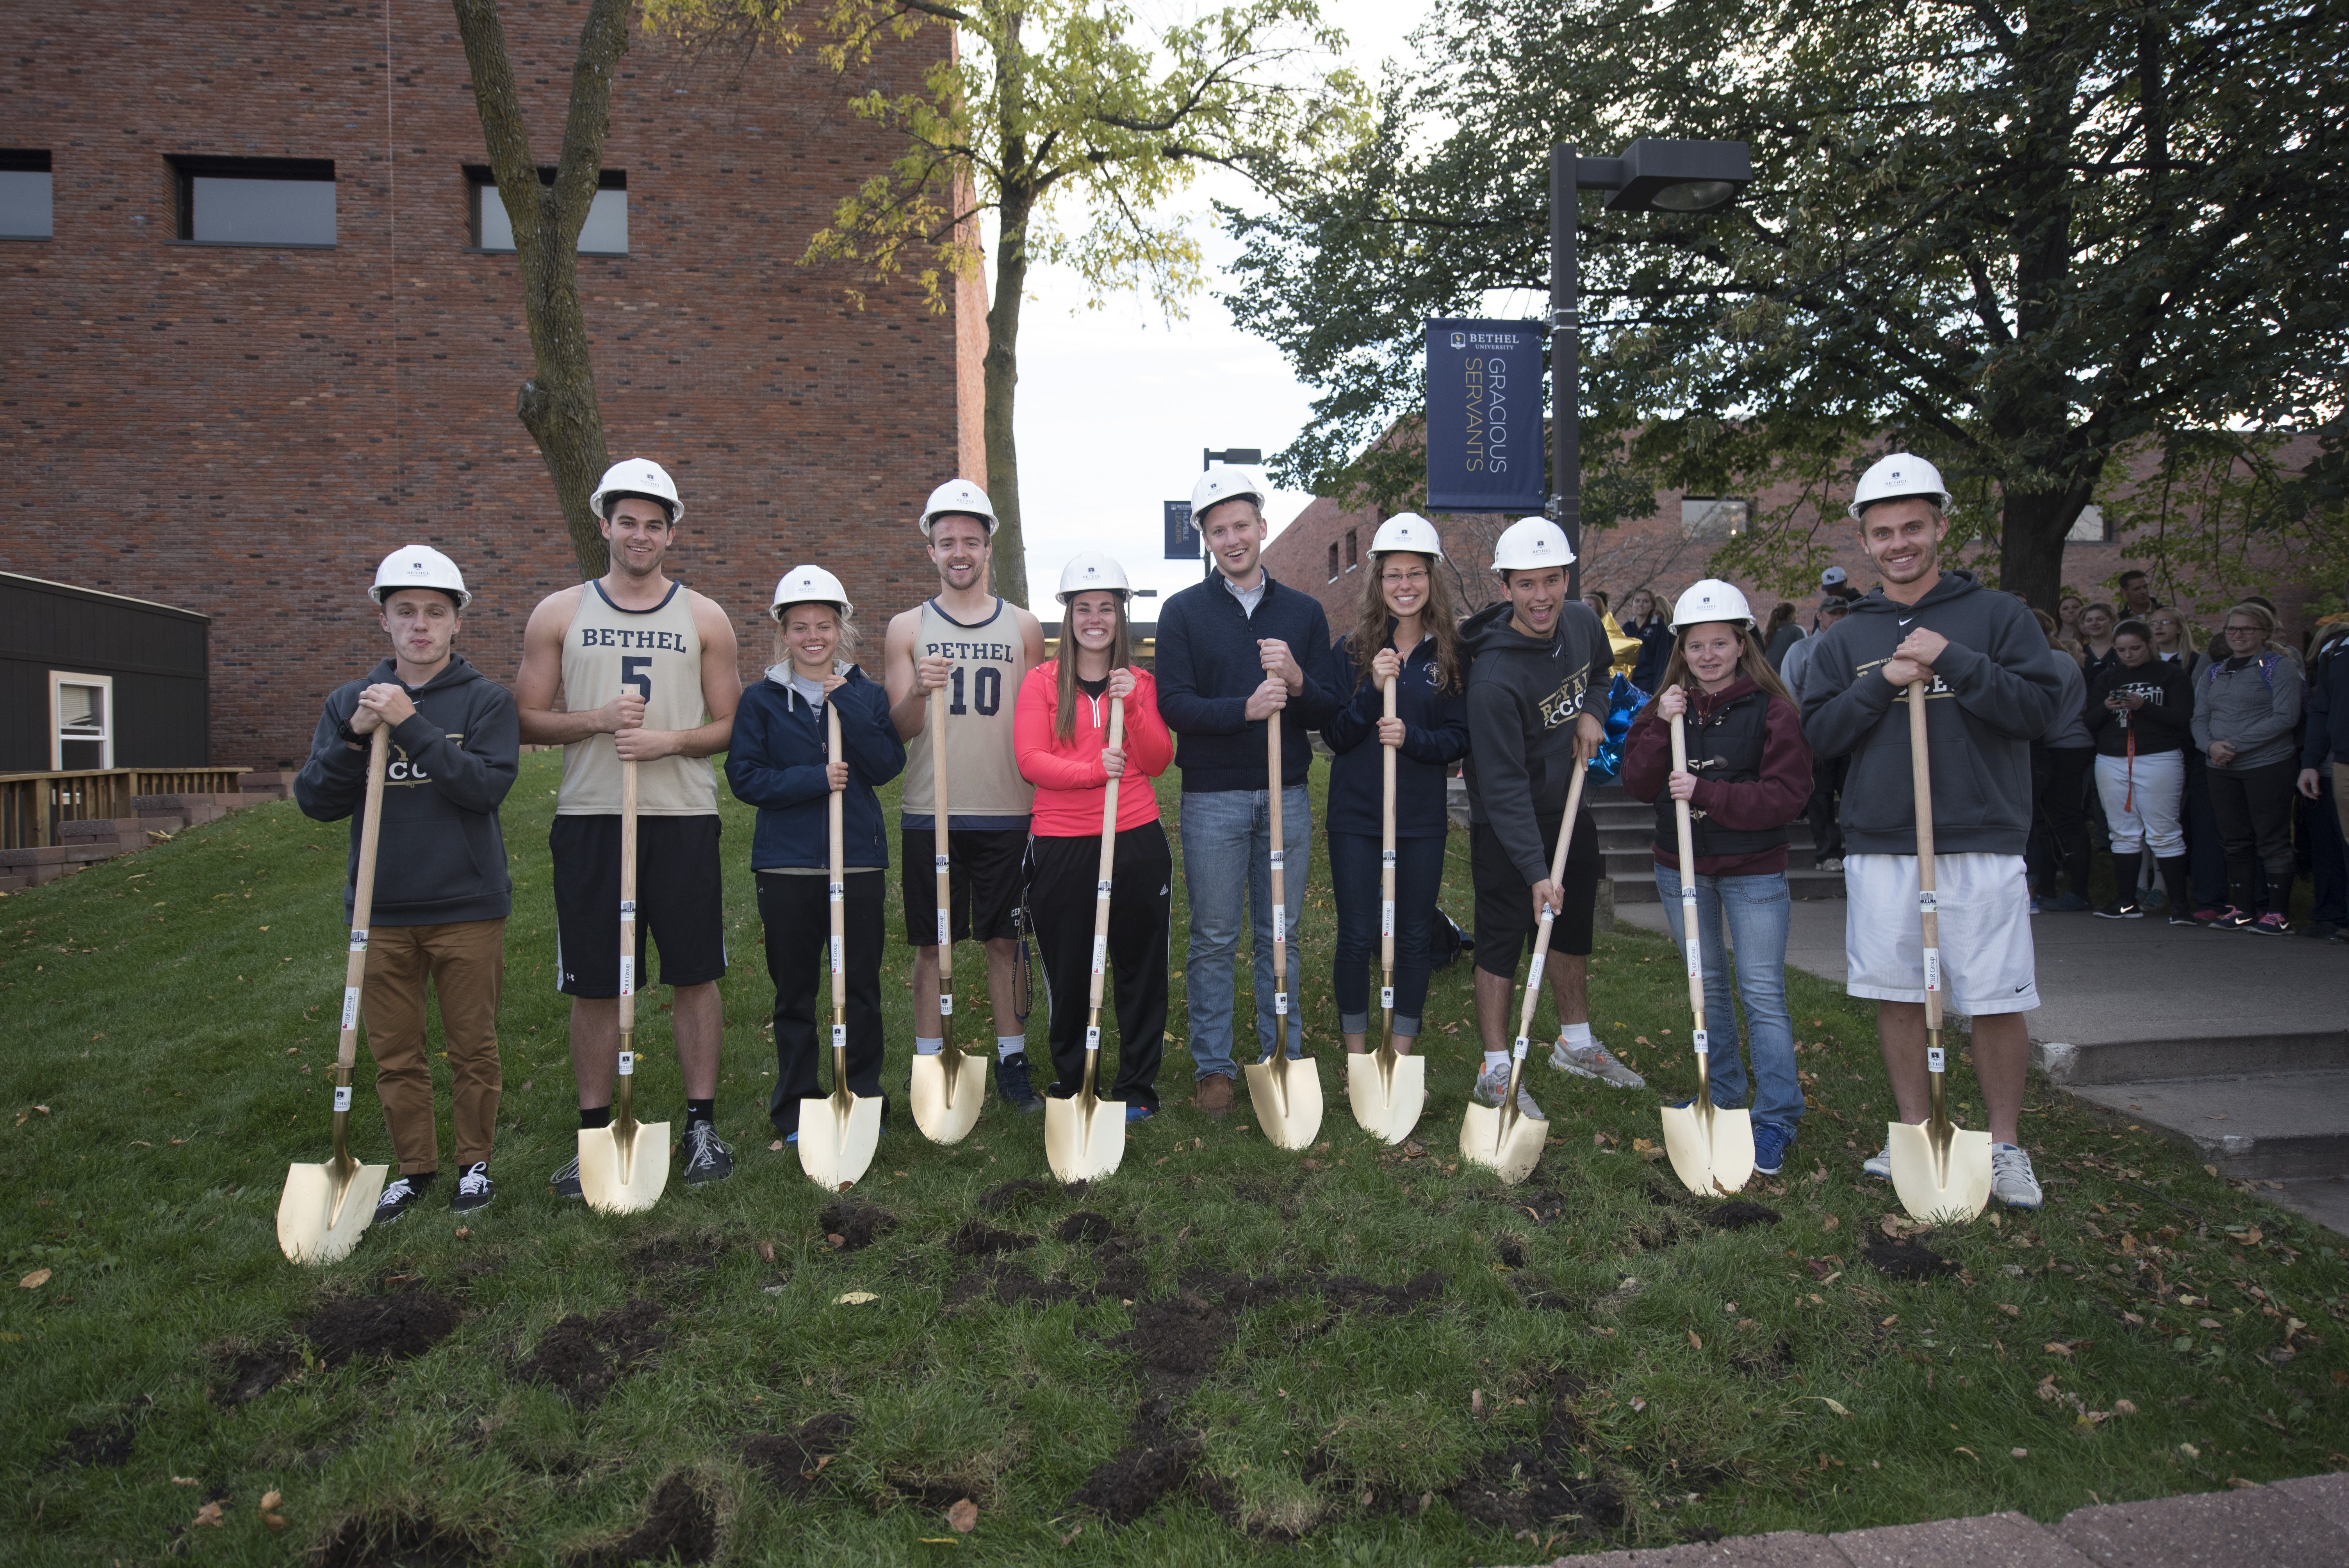 Groundbreaking for the new Wellness Center at Bethel